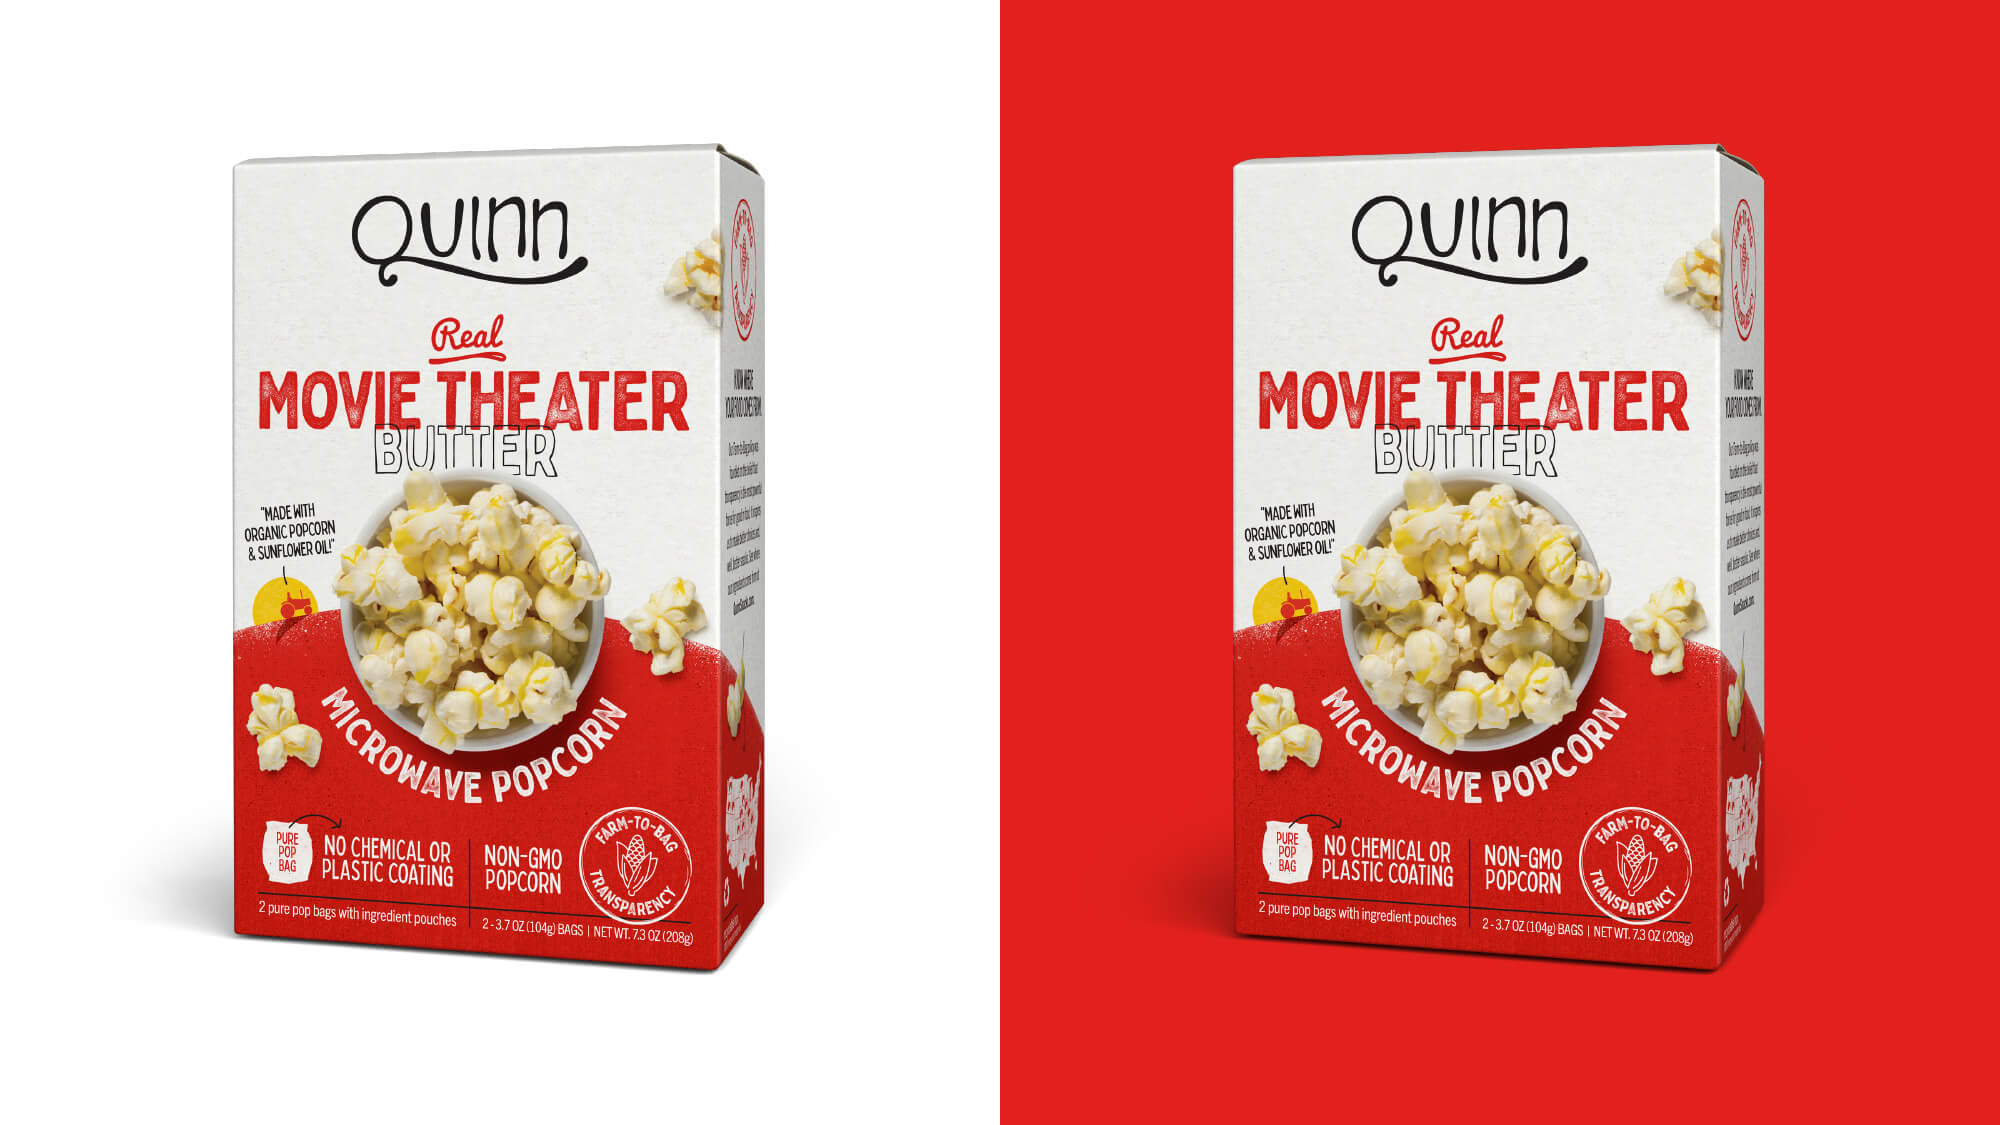 Quinn Popcorn Packaging - Movie Theater Butter